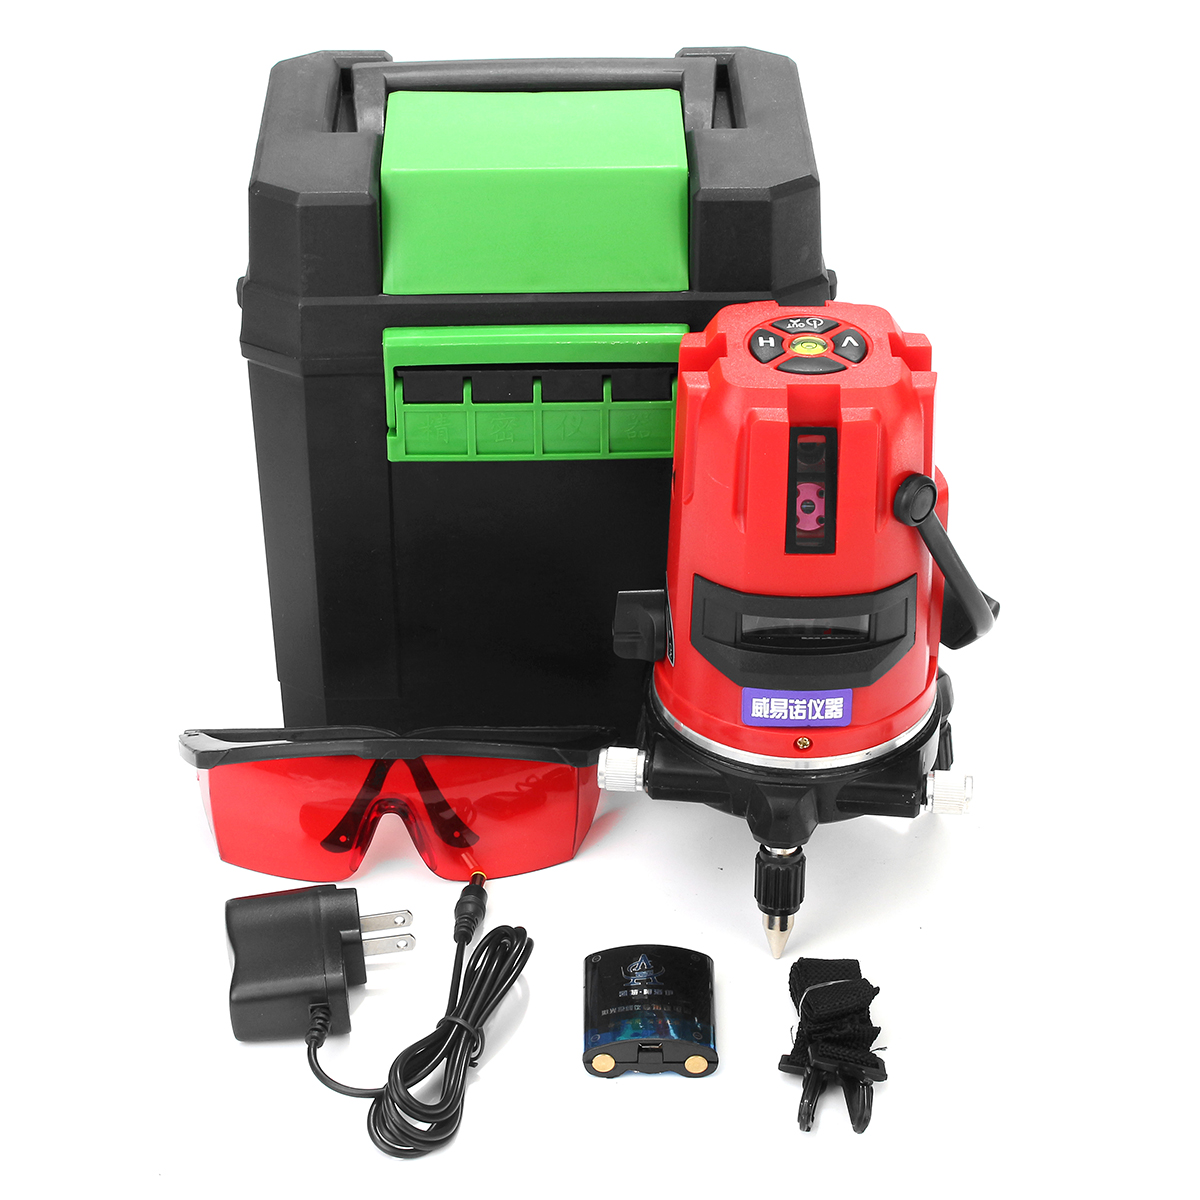 5 Line 6 Point 20 Times Rotary Laser Level Automatic Self Leveling Measure Set